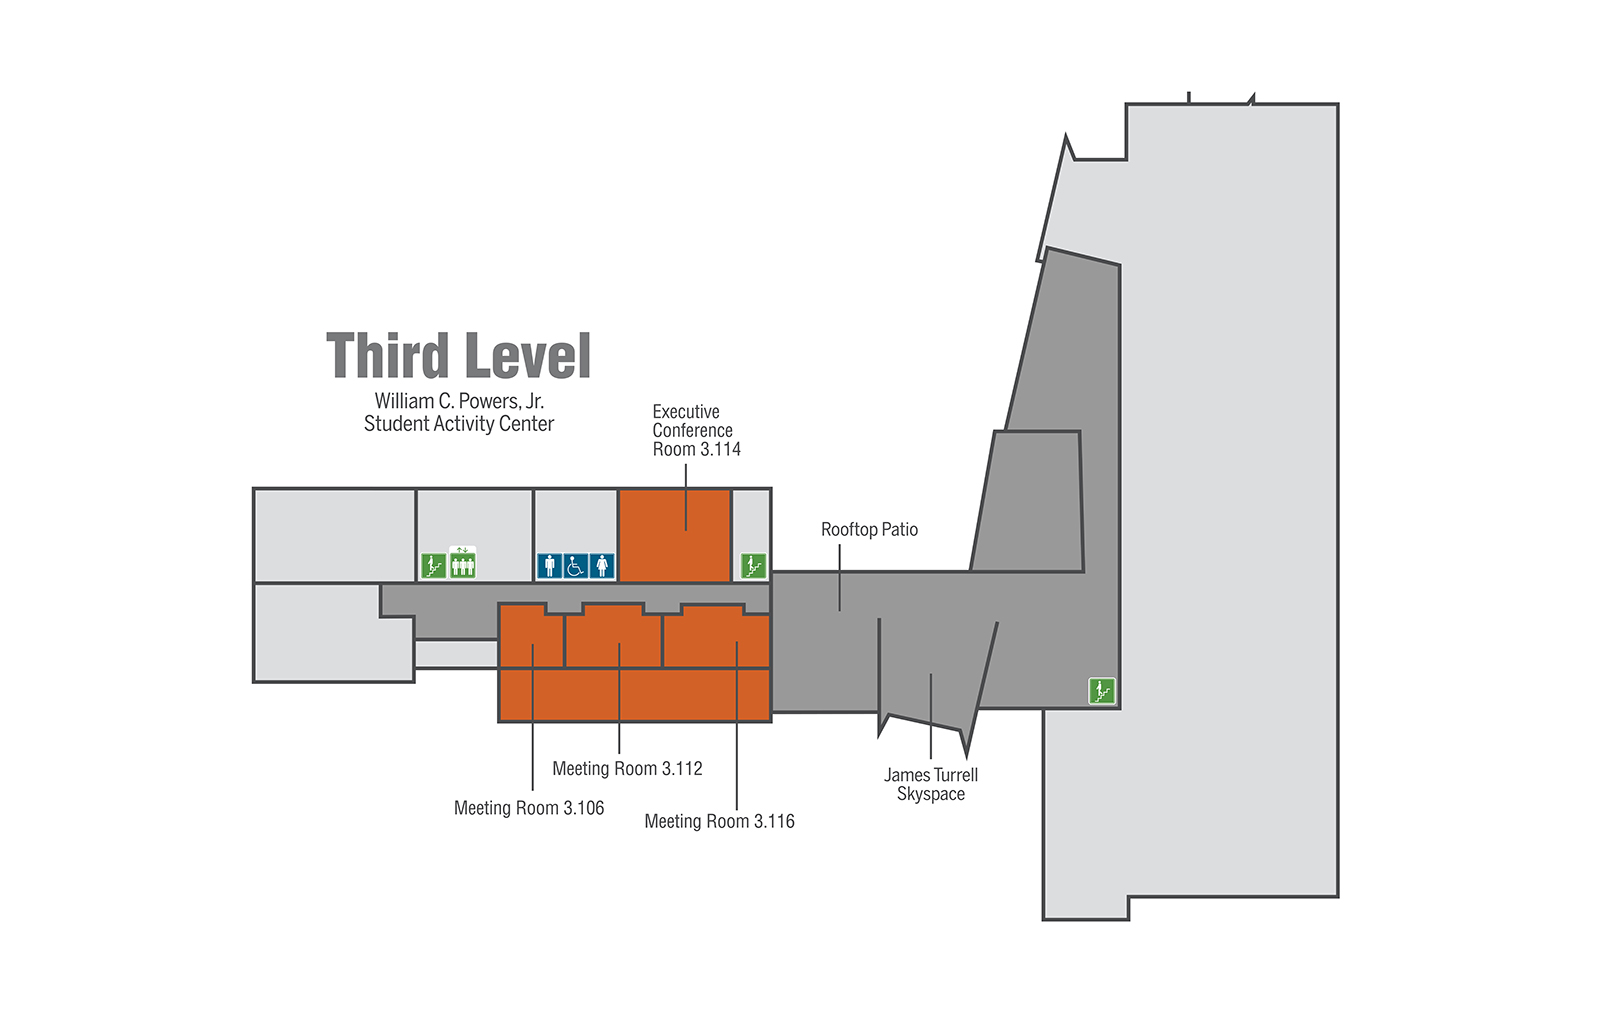 Generic map of Student Activity Center third level.